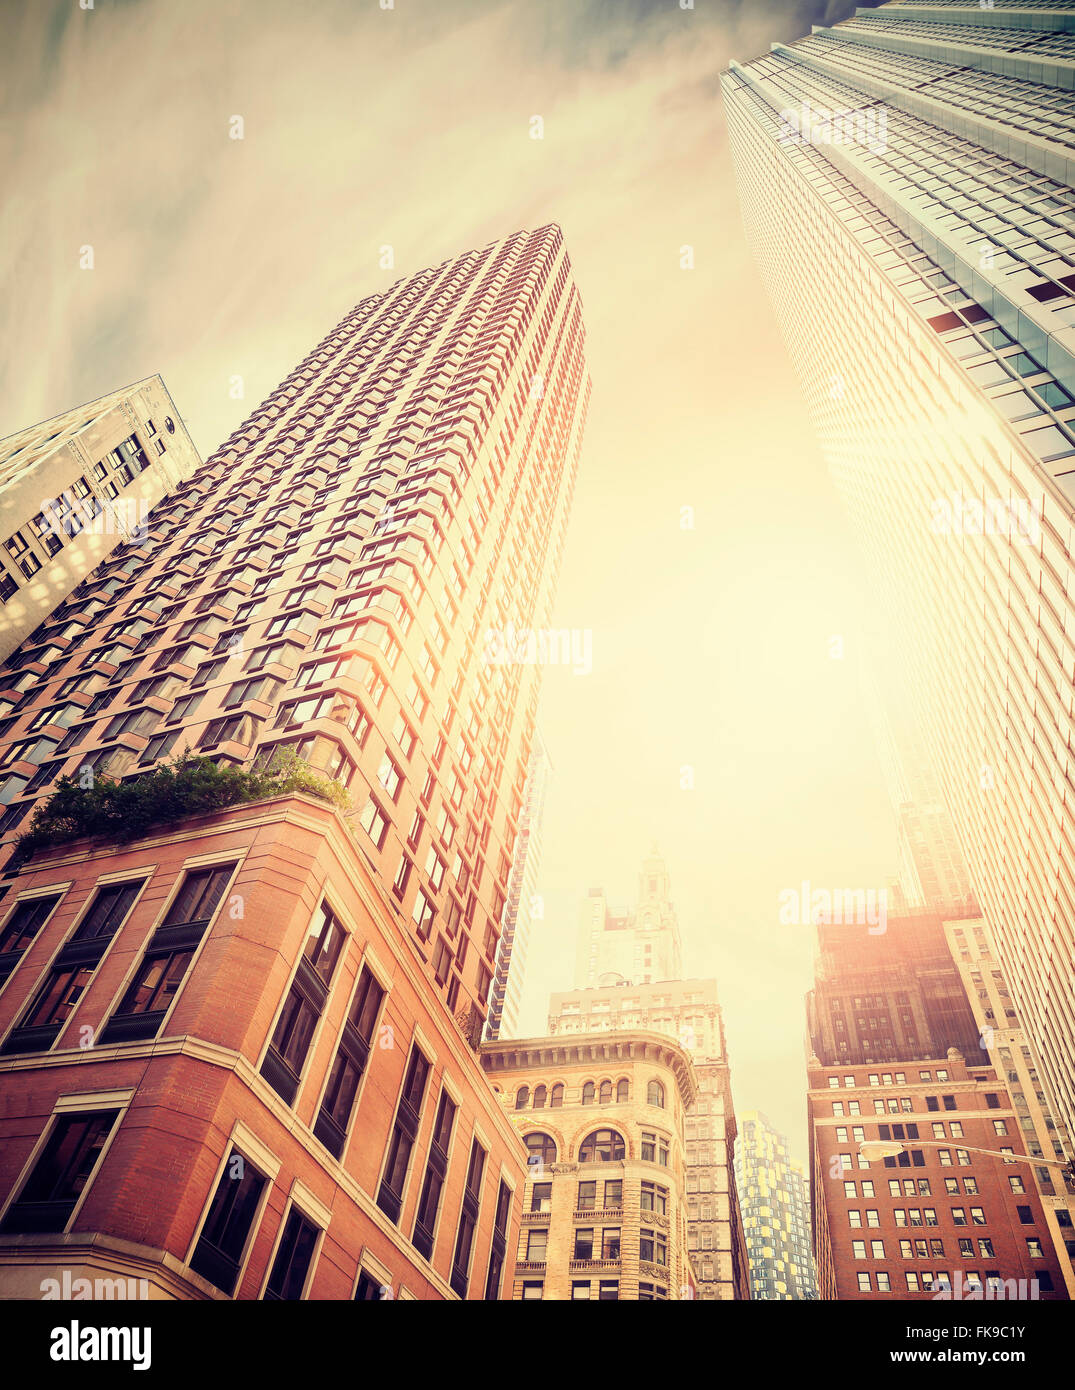 Retro toned photo of Manhattan buildings against sun, New York City, USA. - Stock Image